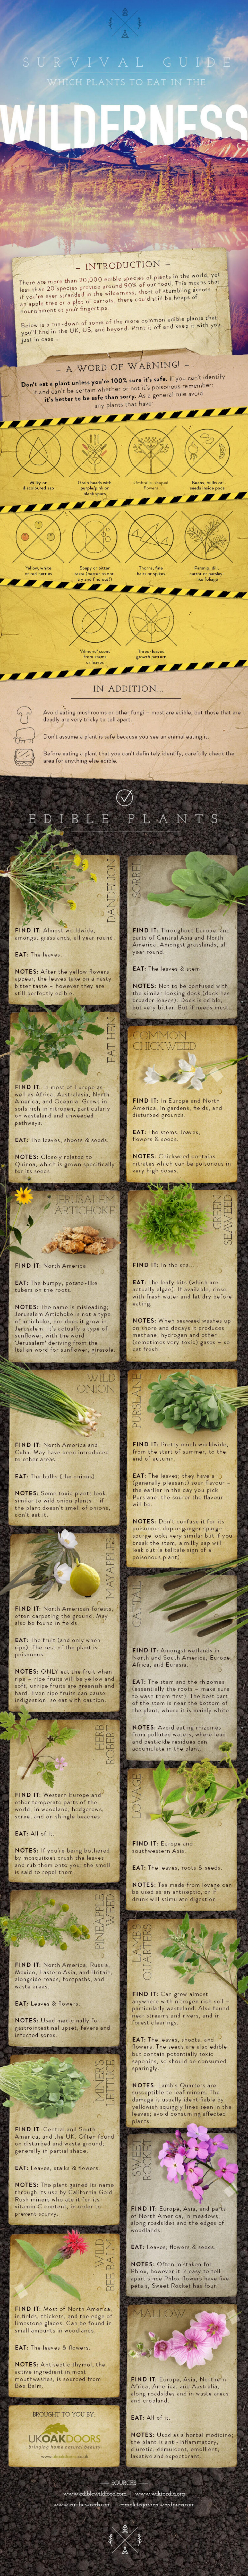 What To Eat In The Wilderness: Survival Guide Infographic